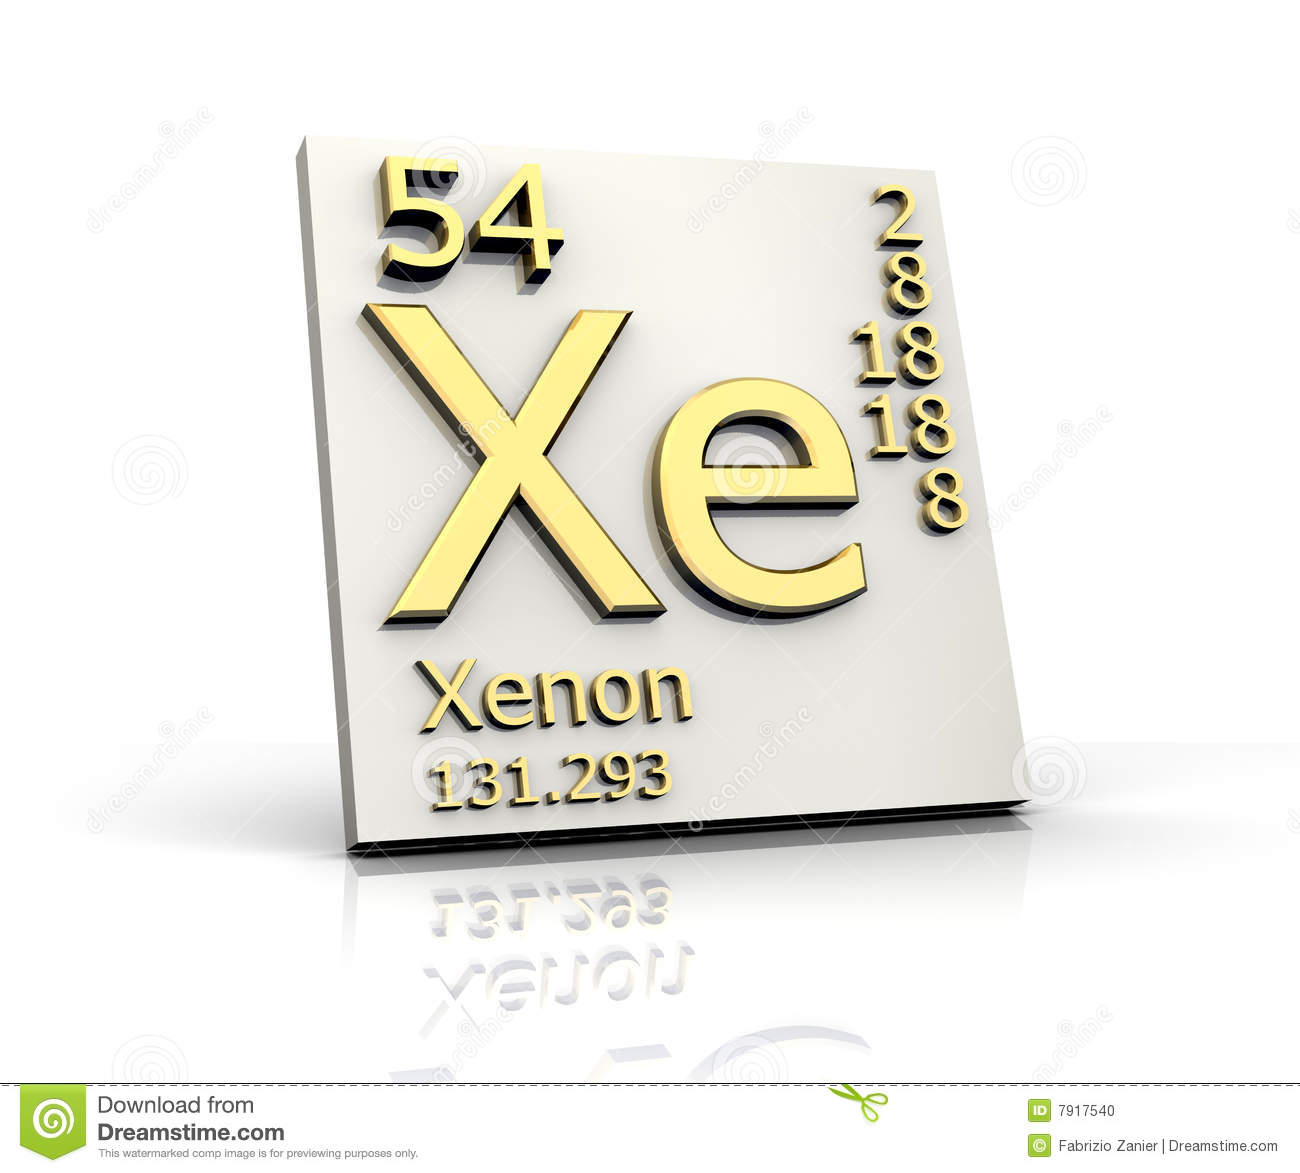 Xenon Form Periodic Table Of Elements Stock Photo - Image: 7917540